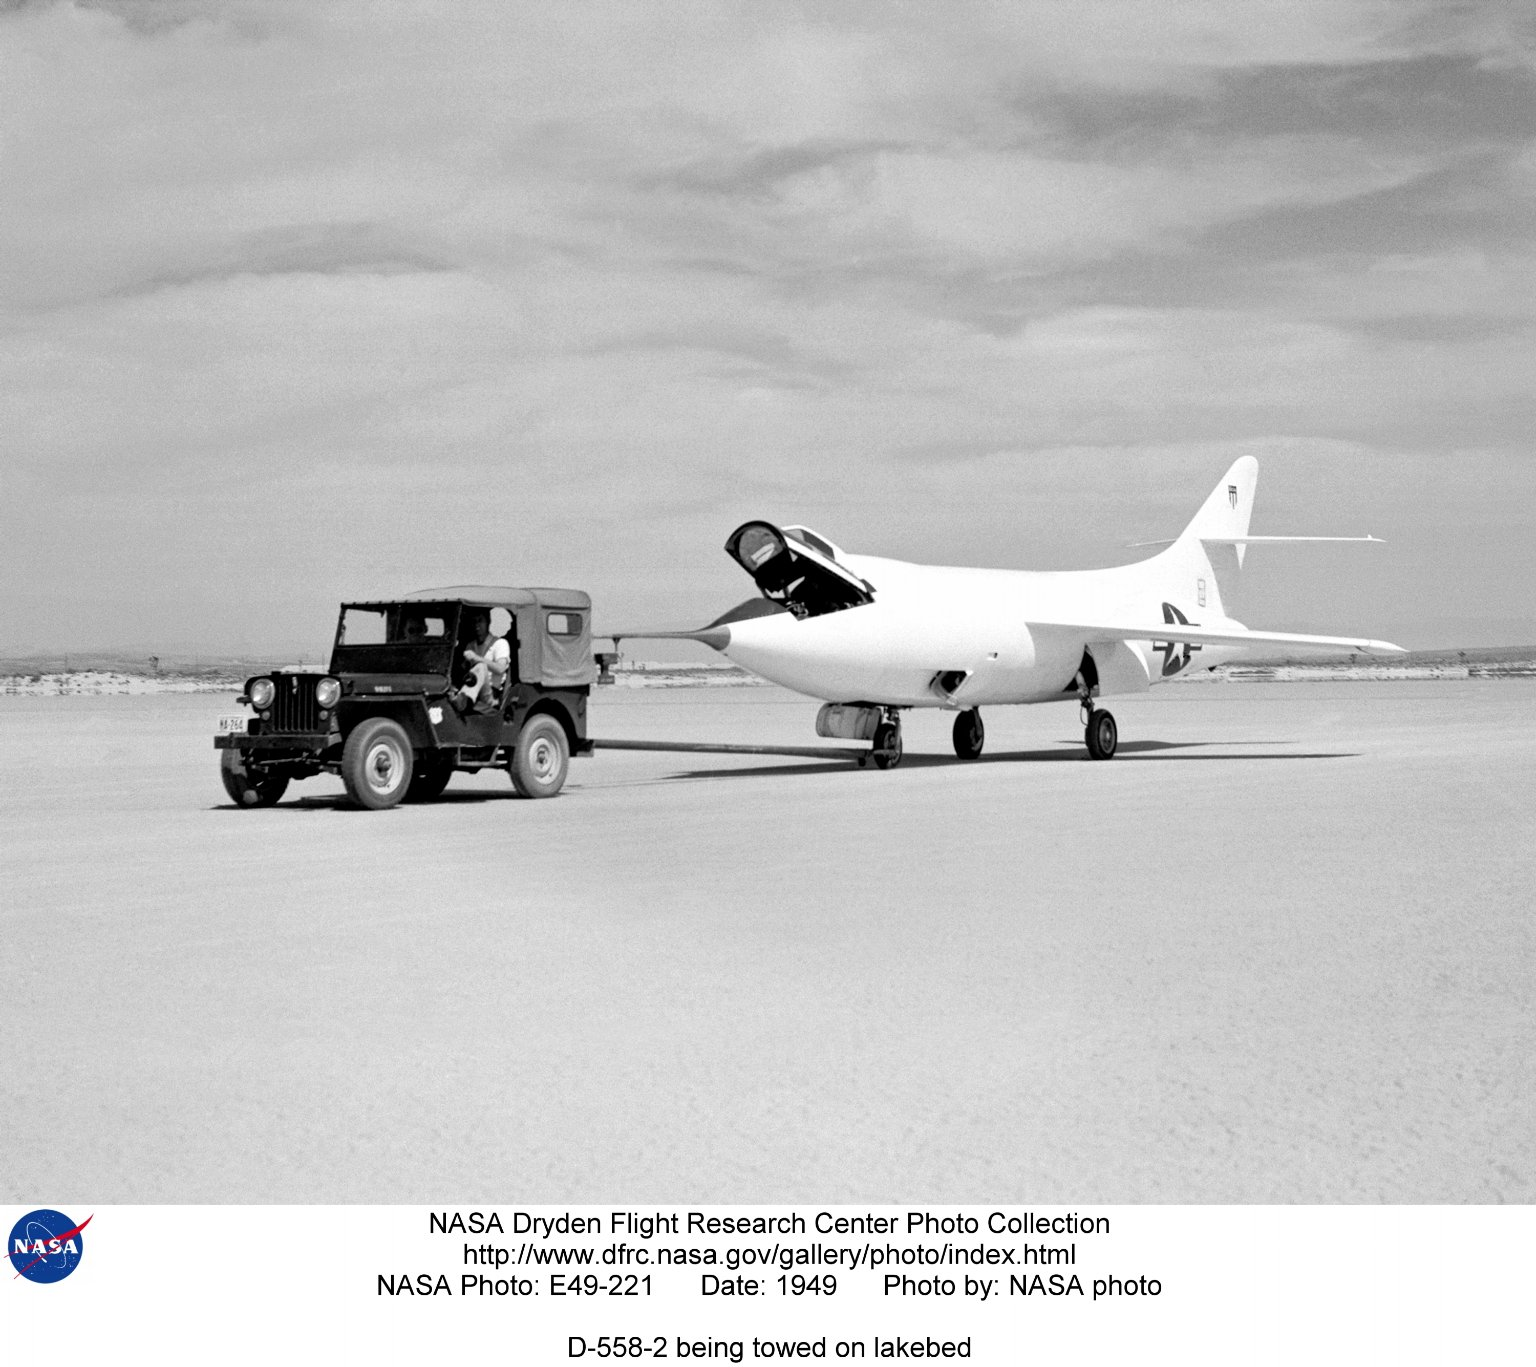 D-558-2 being towed on lakebed